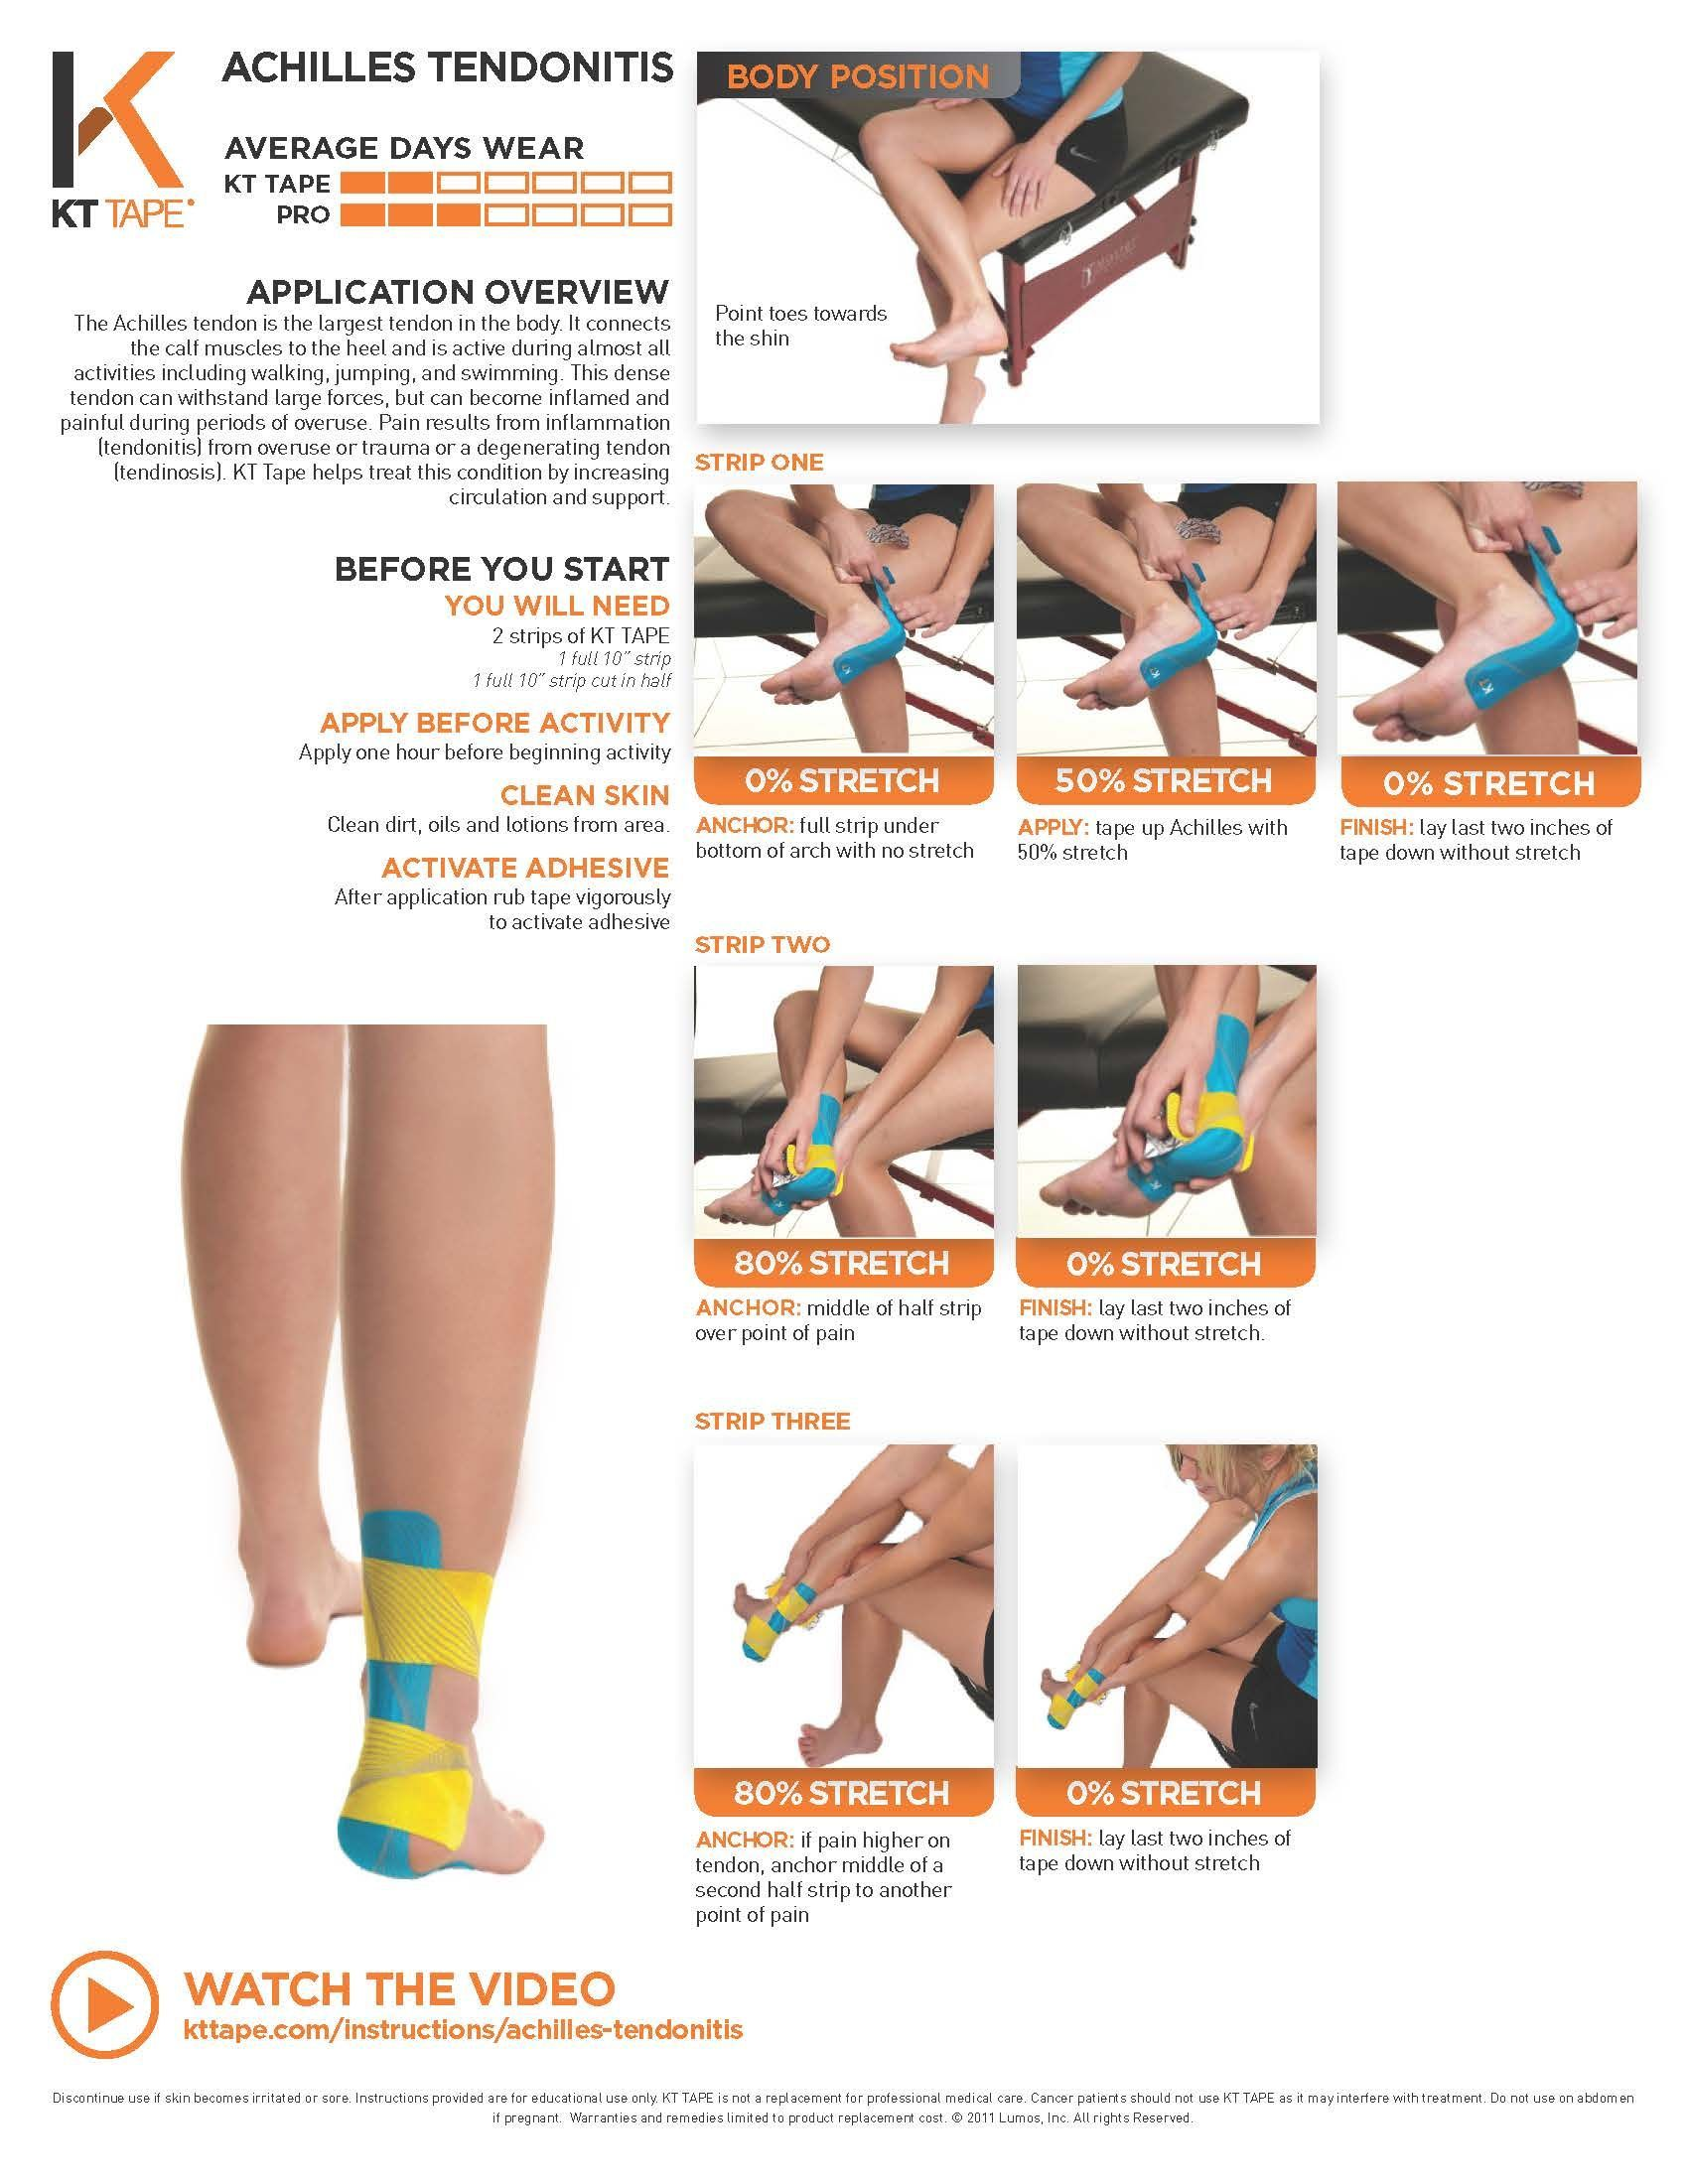 Achilles tendonitis taping kt tape helps treat this